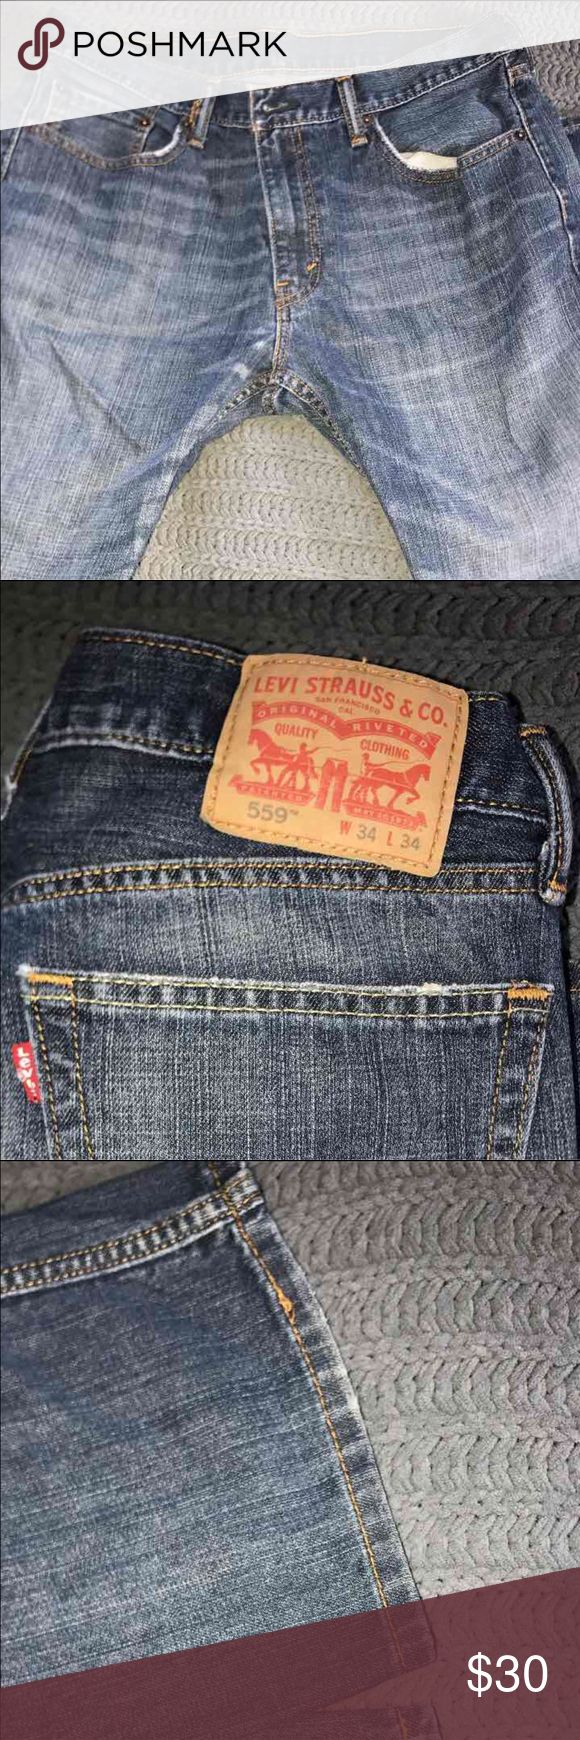 Men's Levi's Jeans Men's Levi's 559 jeans. Size 34x34. Pre-loved in very good condition.  See photos. Levi's Jeans Relaxed